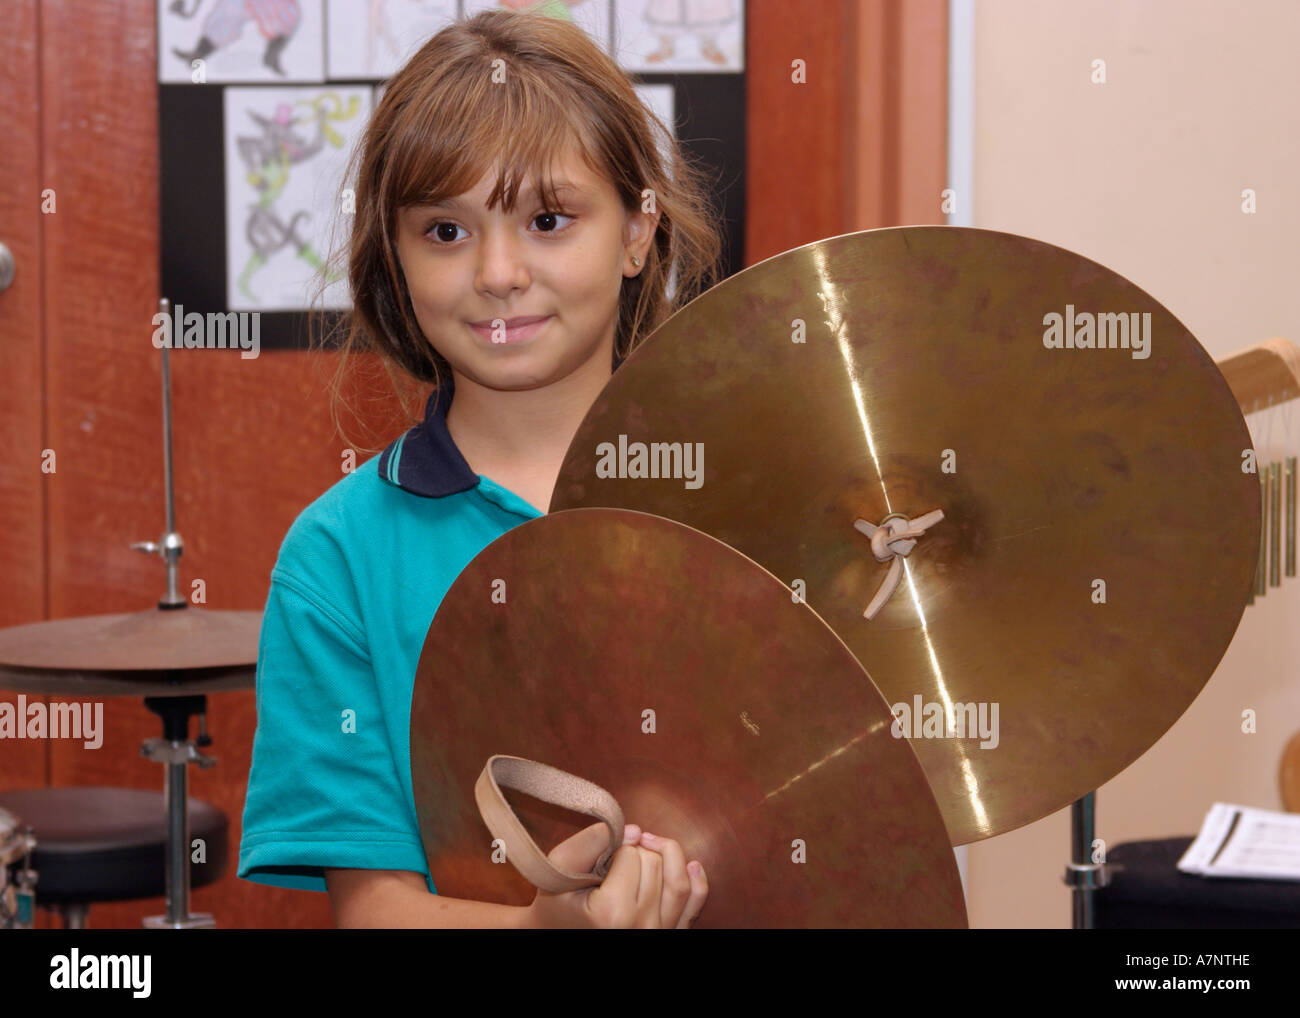 Stock Photo - young girl playing cymbals in music lesson at school